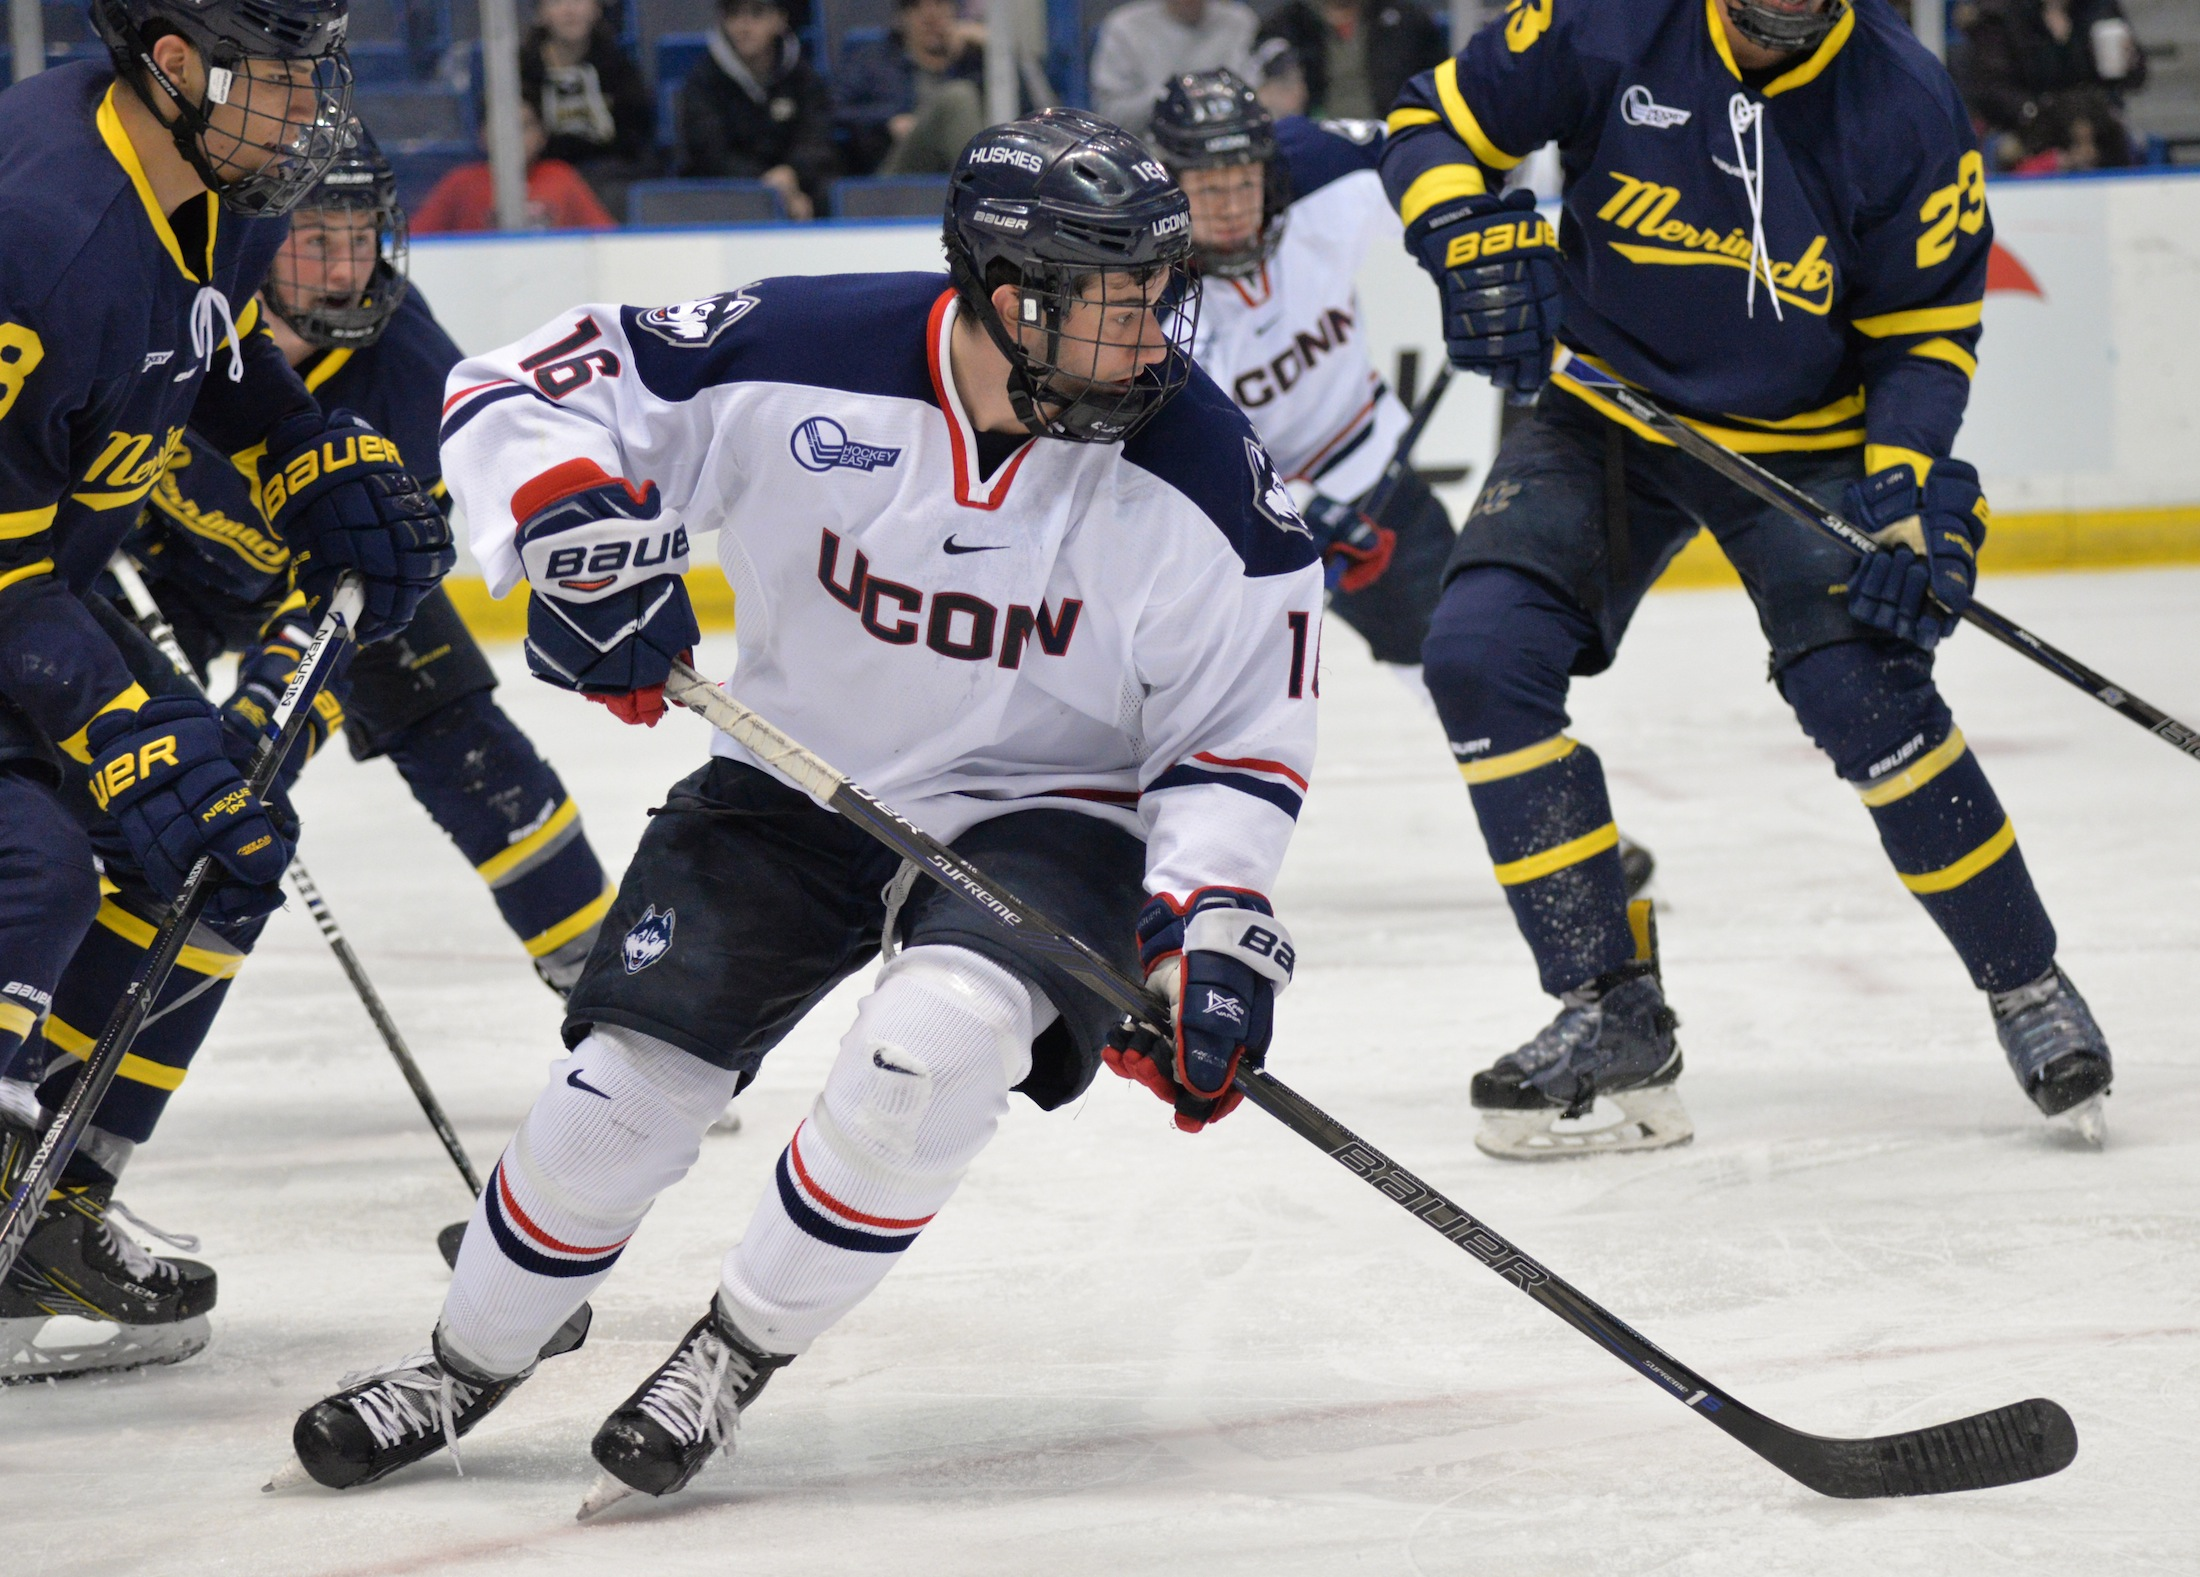 Karl El-Mir looks for the puck in the Huskies' February 4th game against Merrimack at the XL Center. (Amar Batra/The Daily Campus)